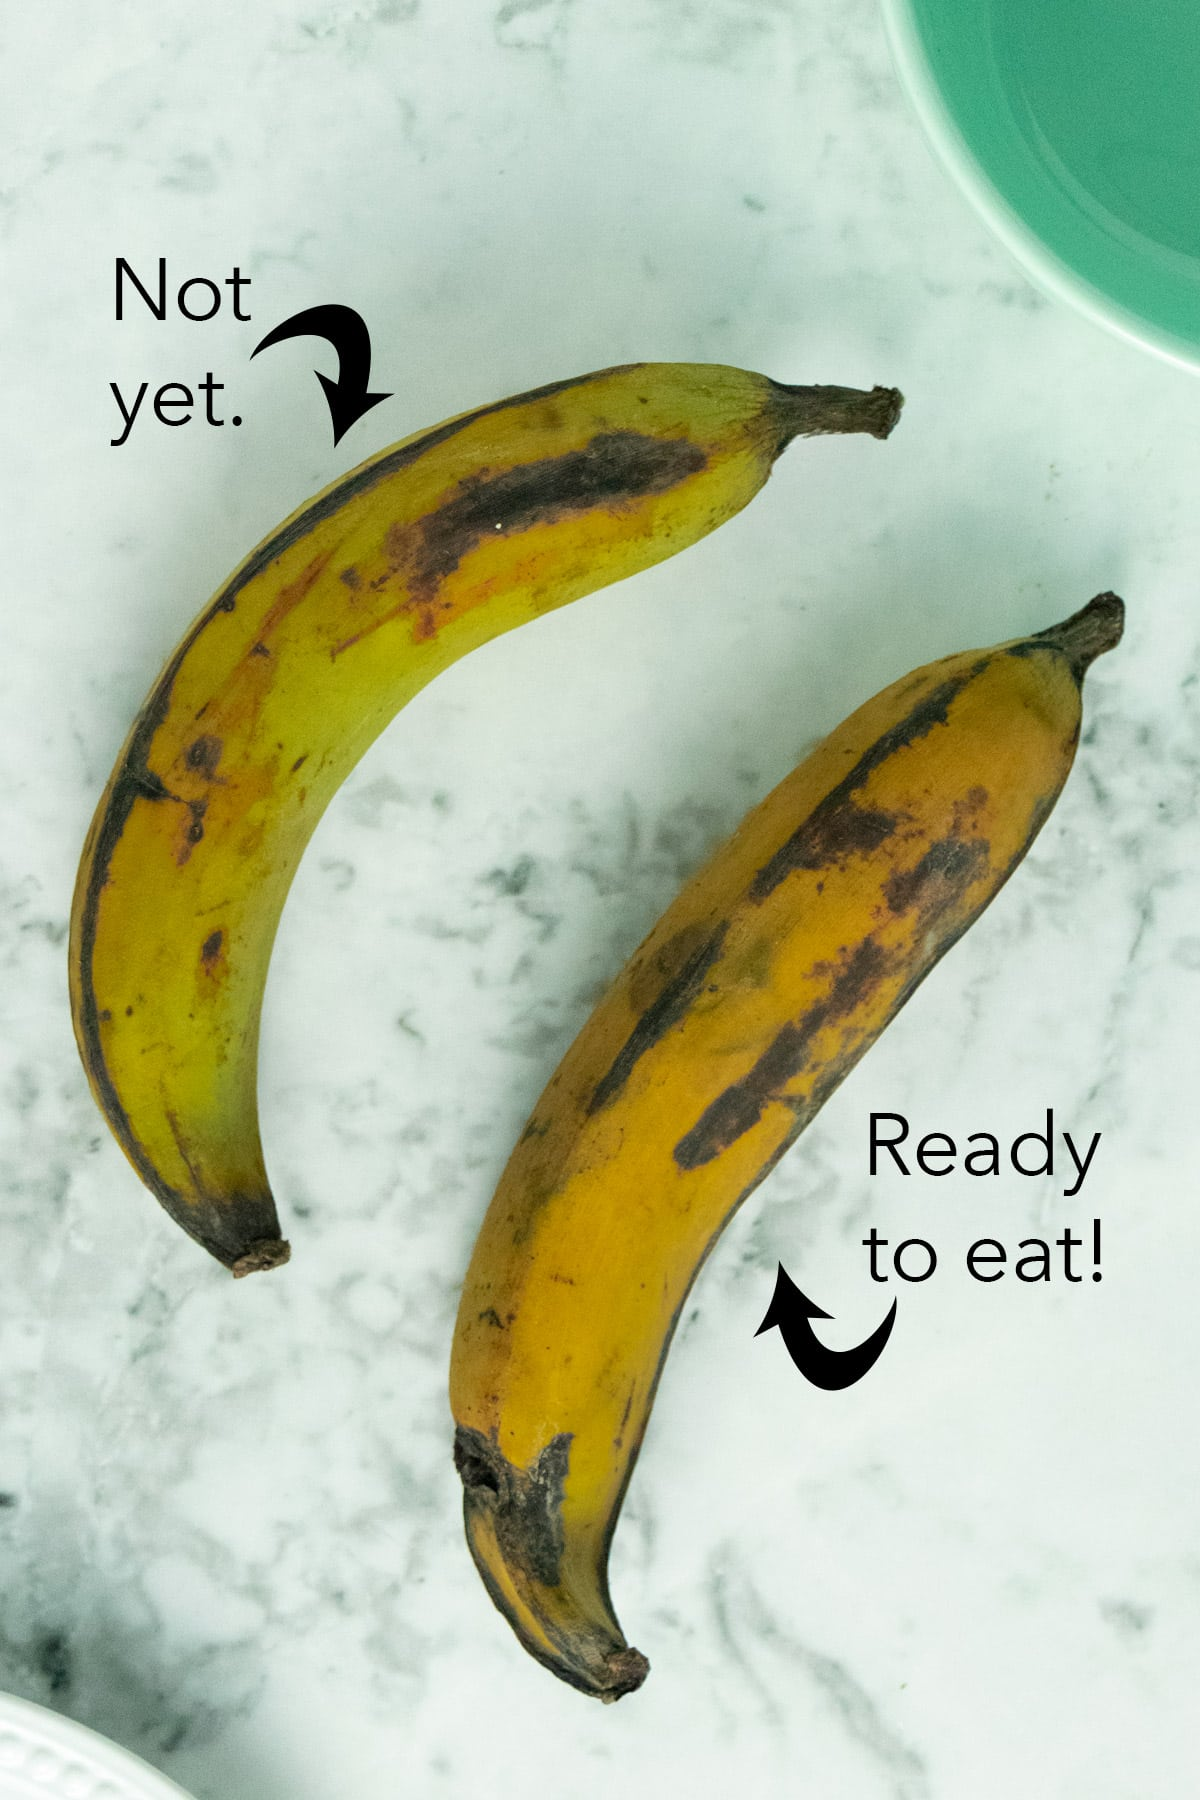 two plantains on a marble tabletop, one ripe, one not